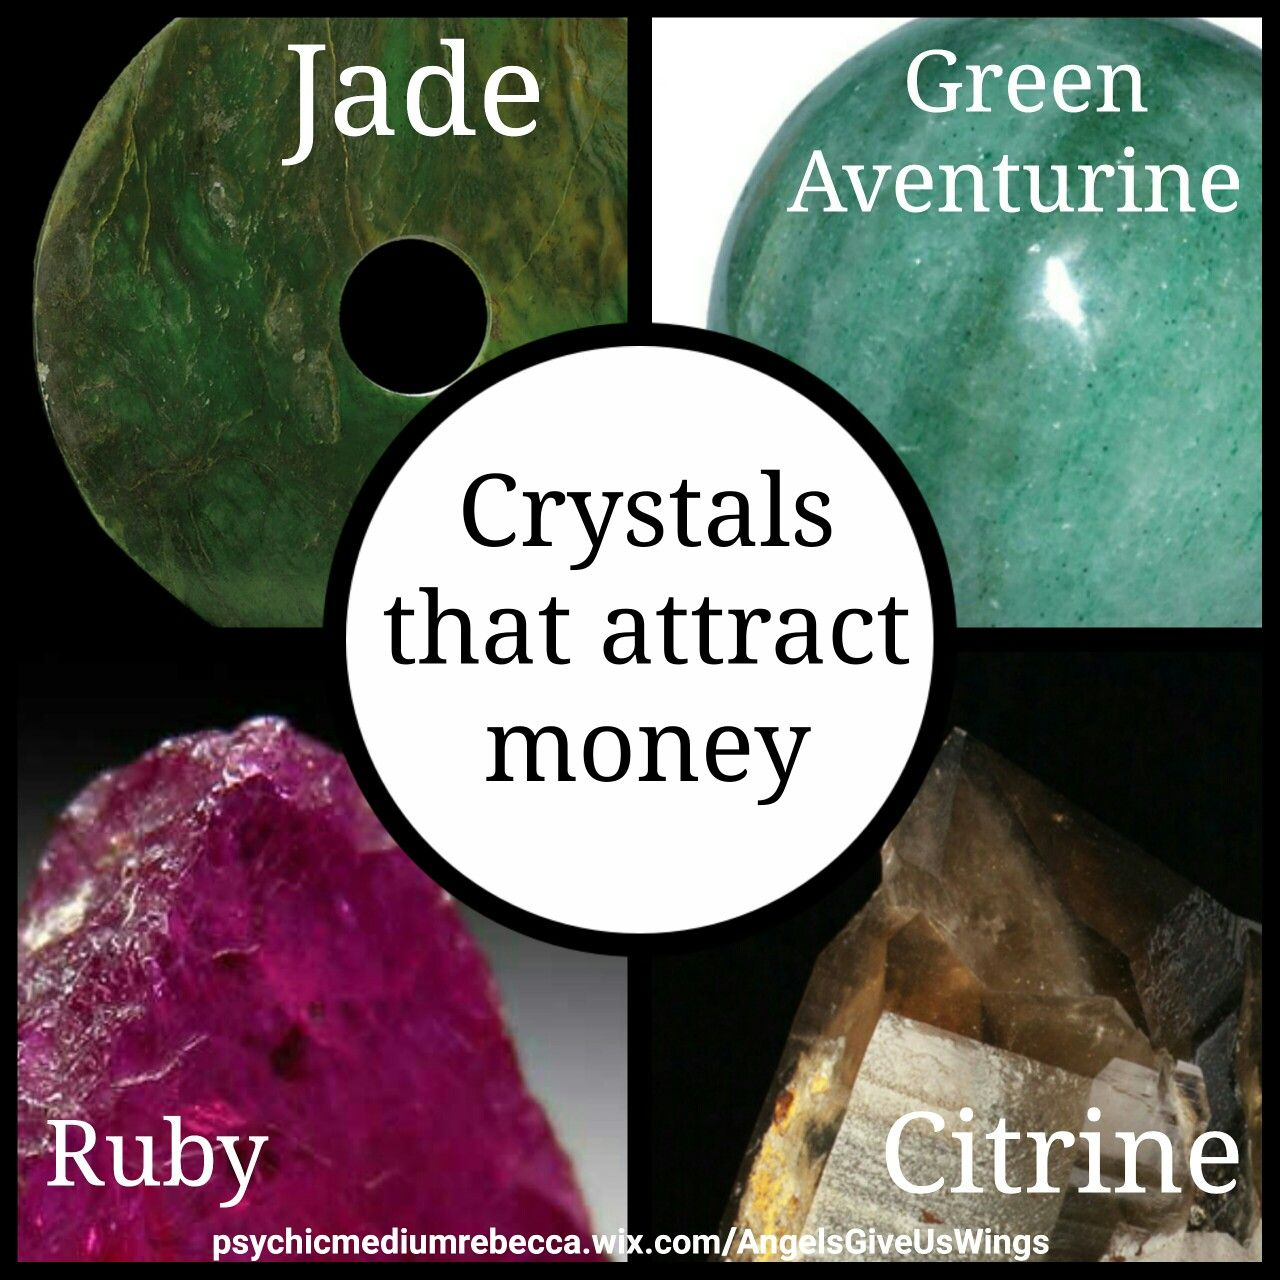 Possible side effects of using crystals | Crystals | Meditation